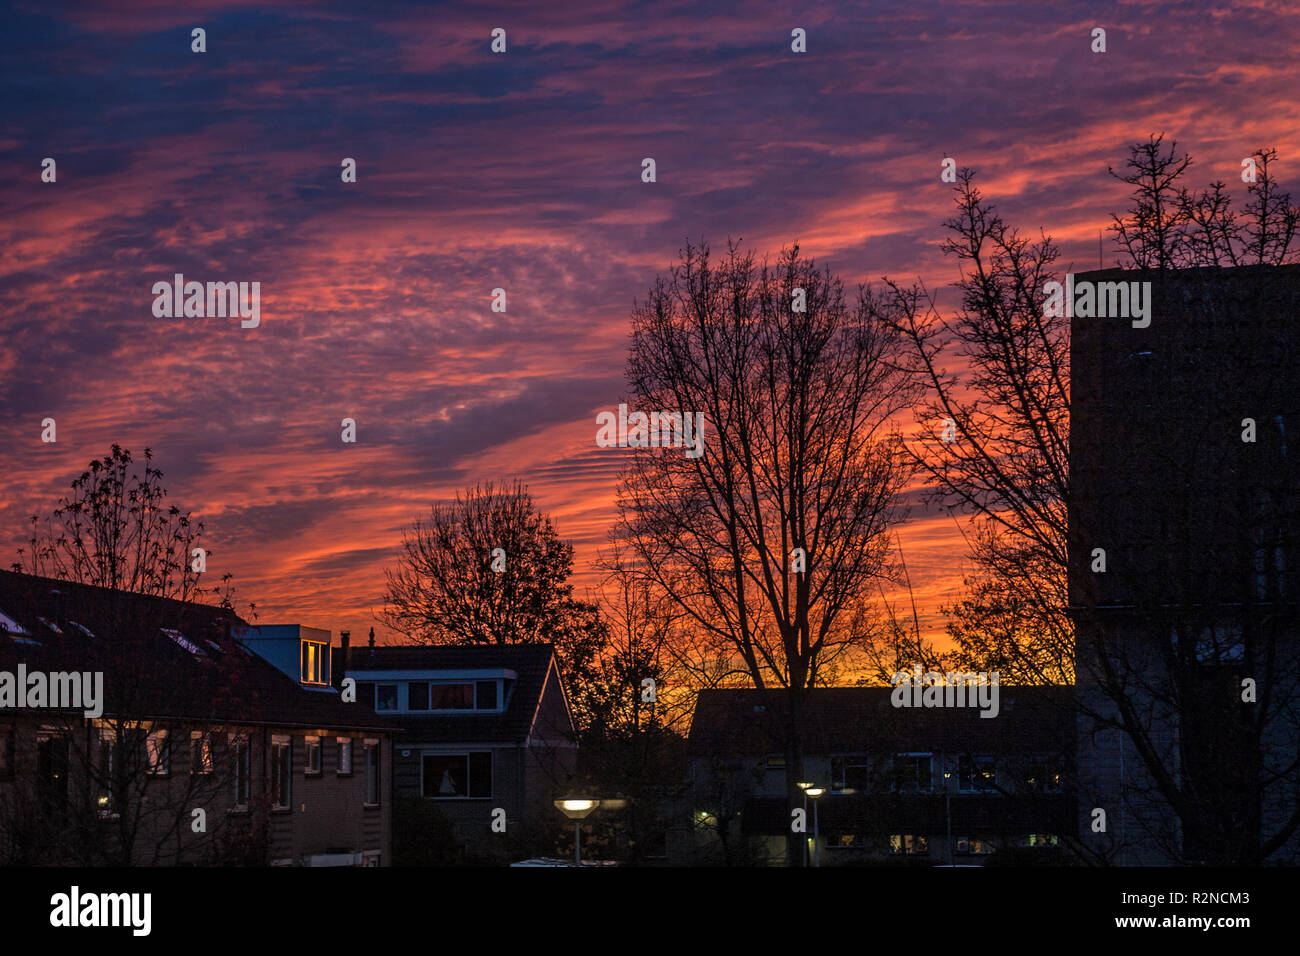 Colorful sunset in a dutch town. Trees are silhouetted against the evening sky. - Stock Image